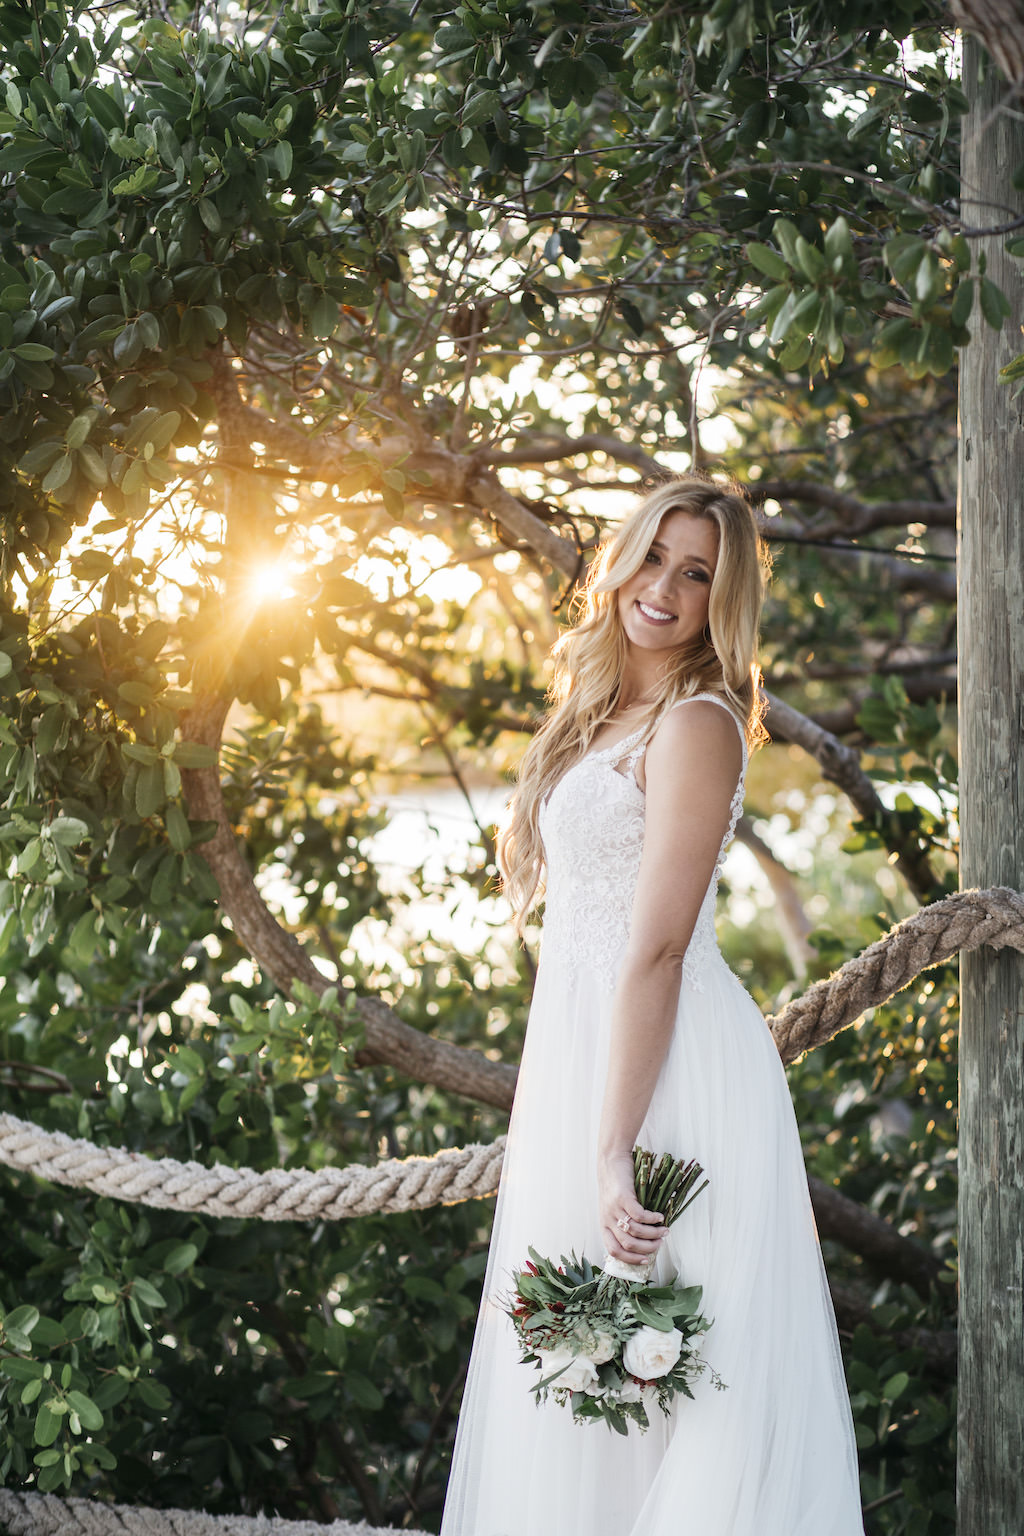 Sunset Outdoor Bridal Portrait in Lace Bodice with Lace Straps Empire Waist Wedding Dress with Greenery and Ivory Floral Bouquet